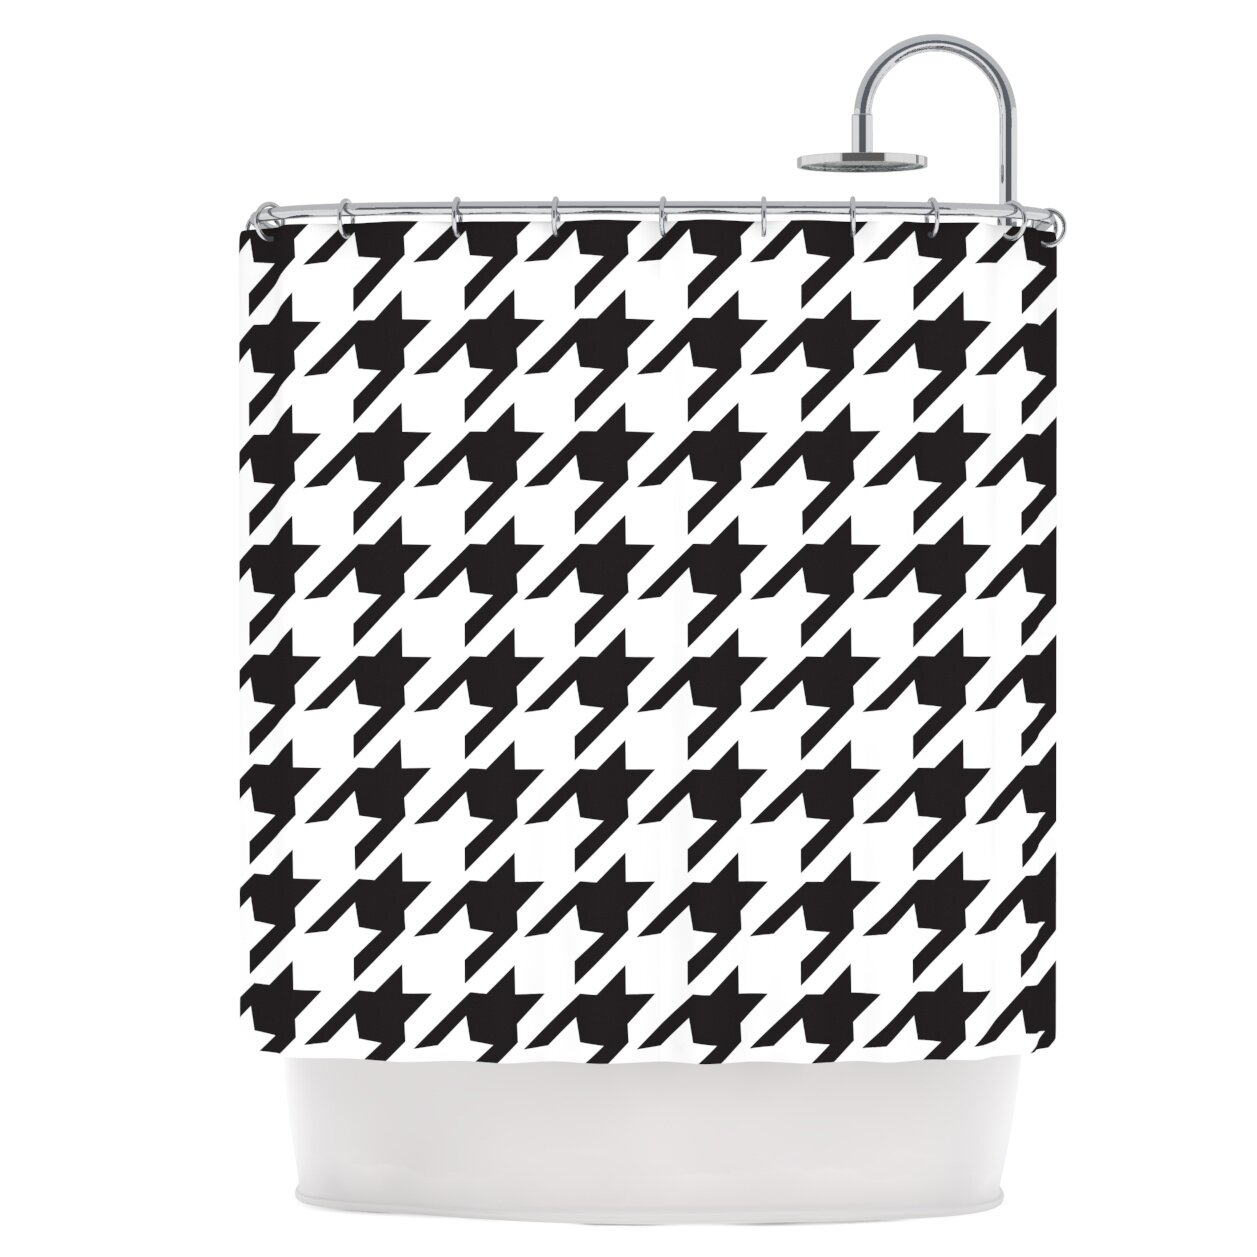 East Urban Home Houndstooth Shower Curtain